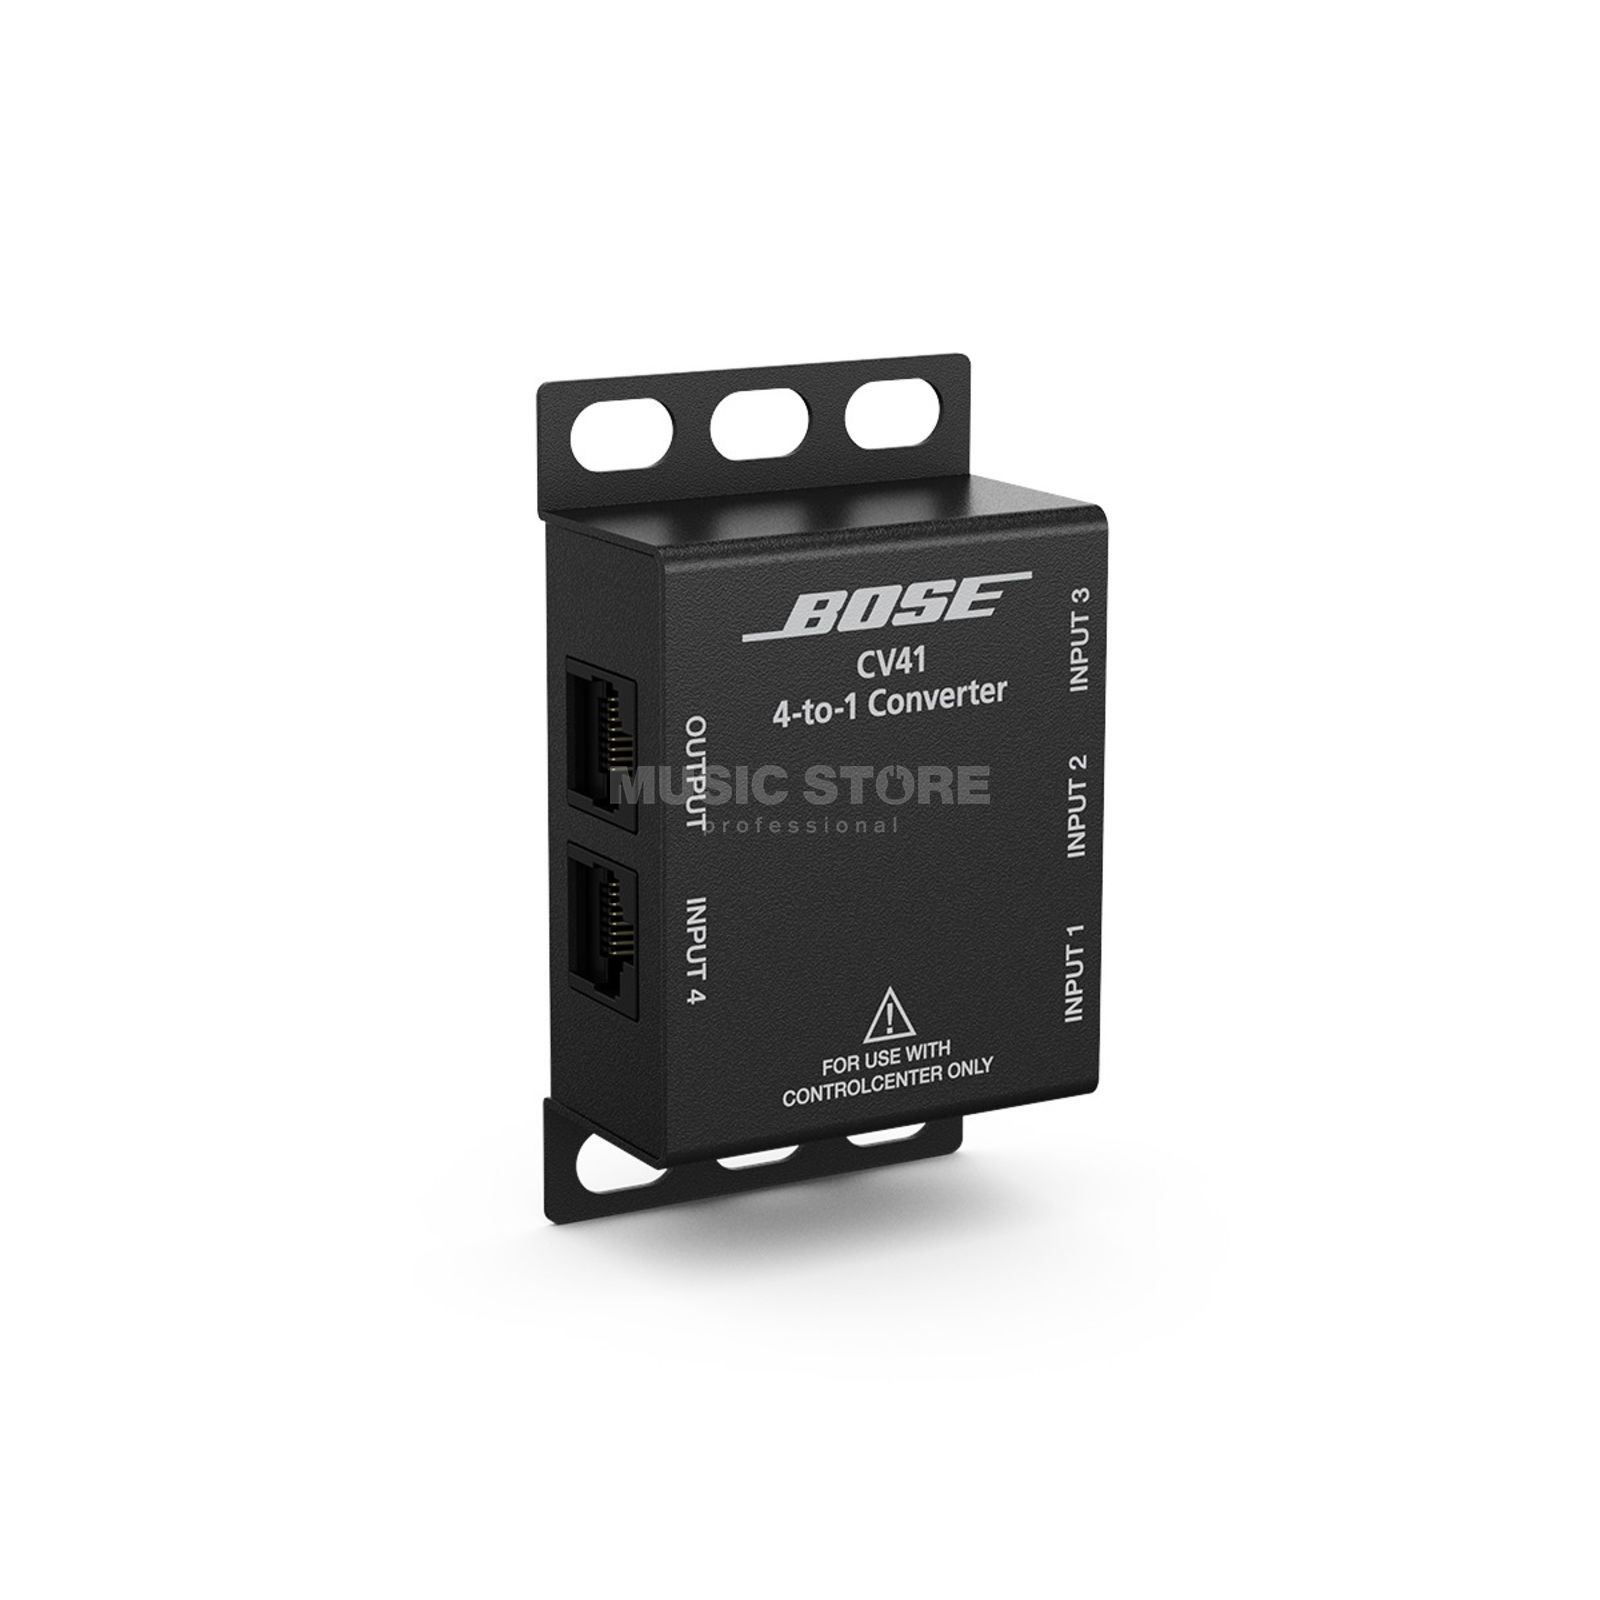 Bose ControlCenter CV41 4 to 1 Converter Product Image